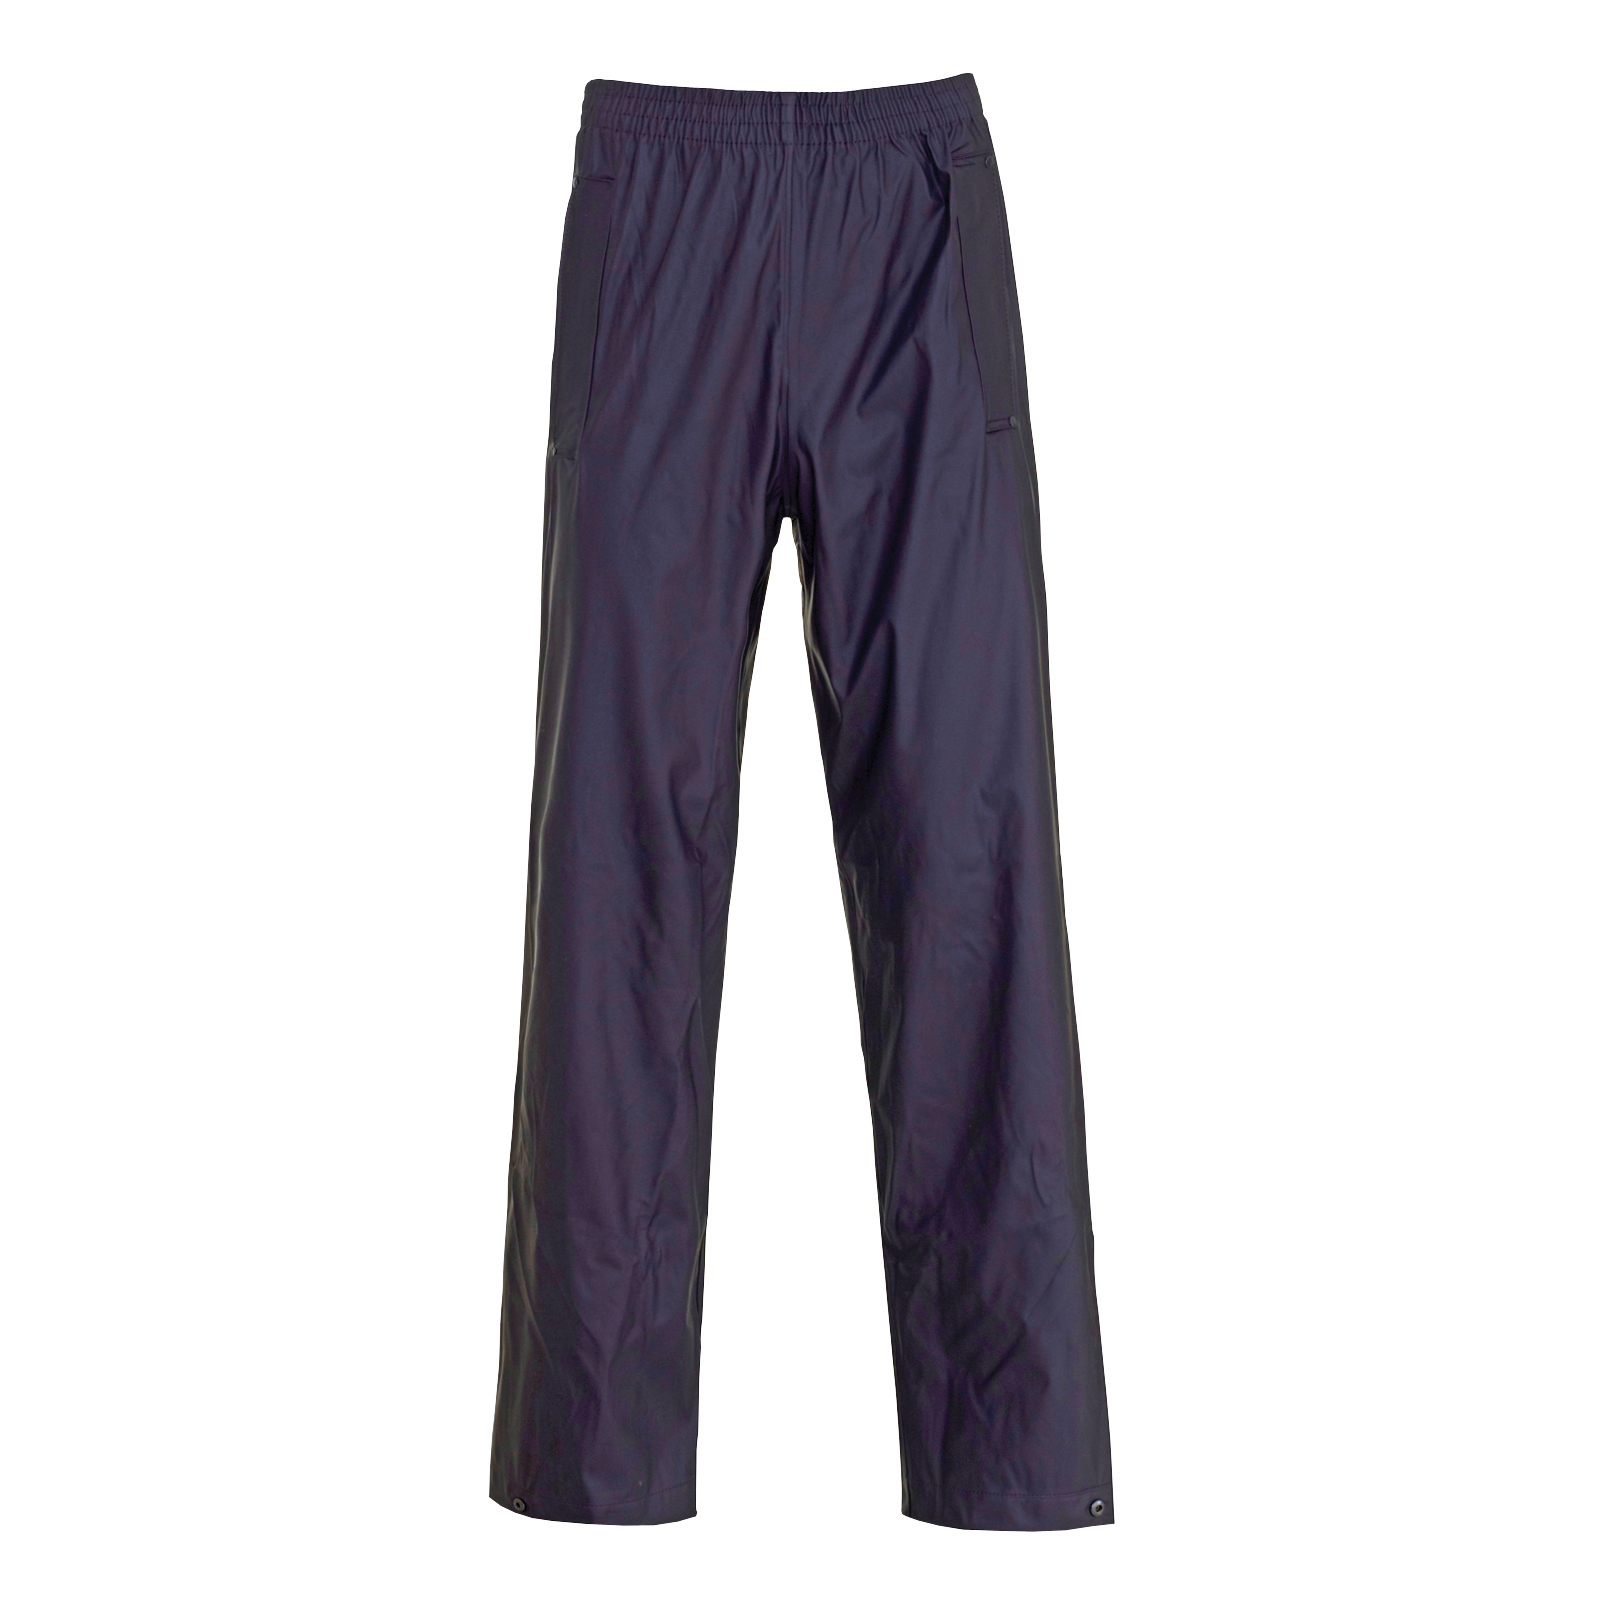 Weatherproof B-Dri Weatherproof Super Trousers Medium Navy Blue Ref SBDTNM *Approx 3 Day Leadtime*